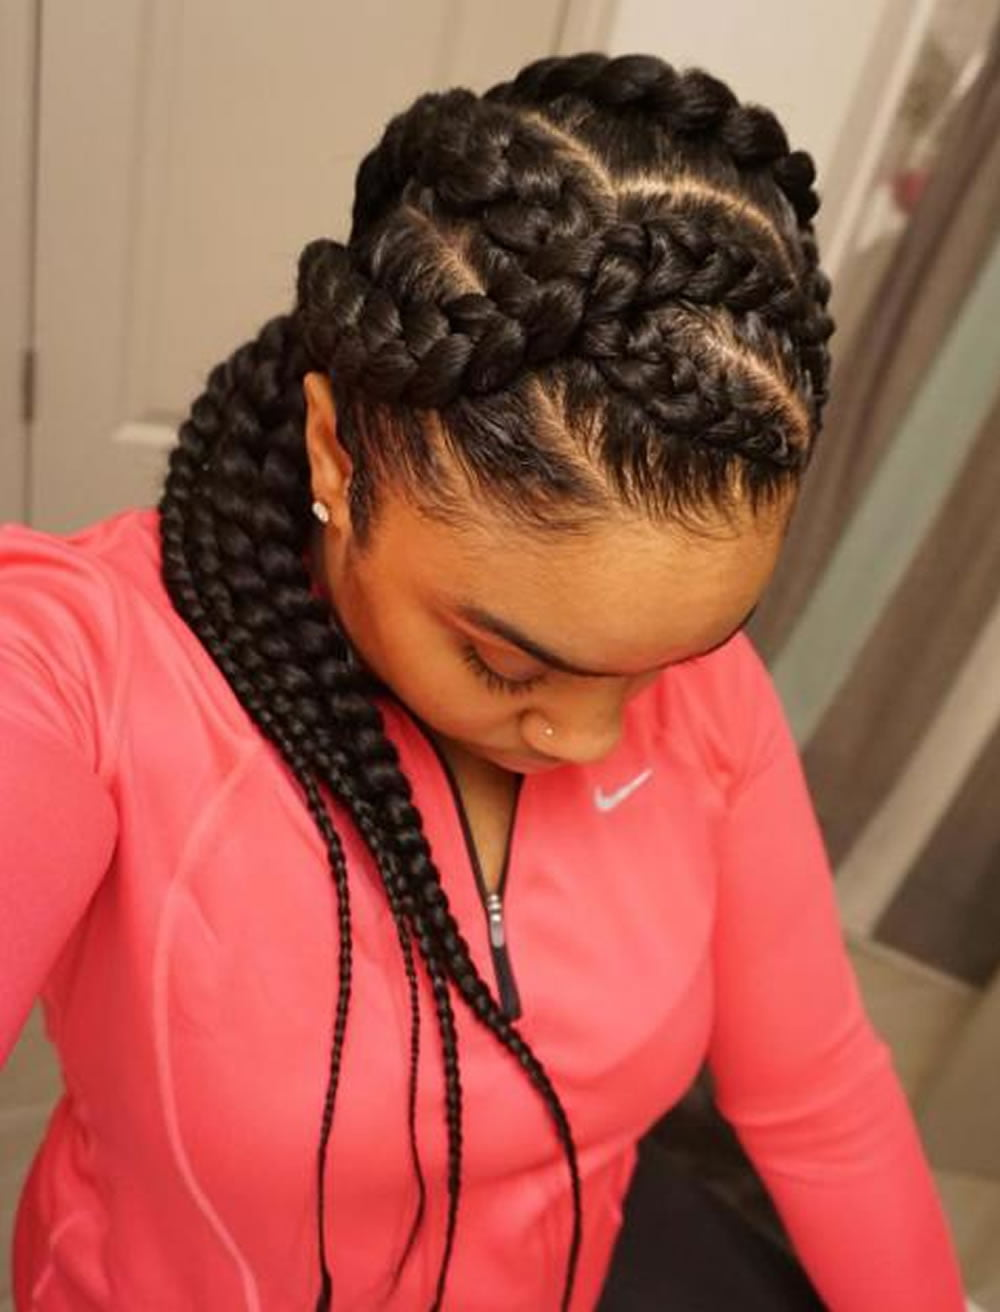 20 Best African American Braided Hairstyles for Women 2017 ...